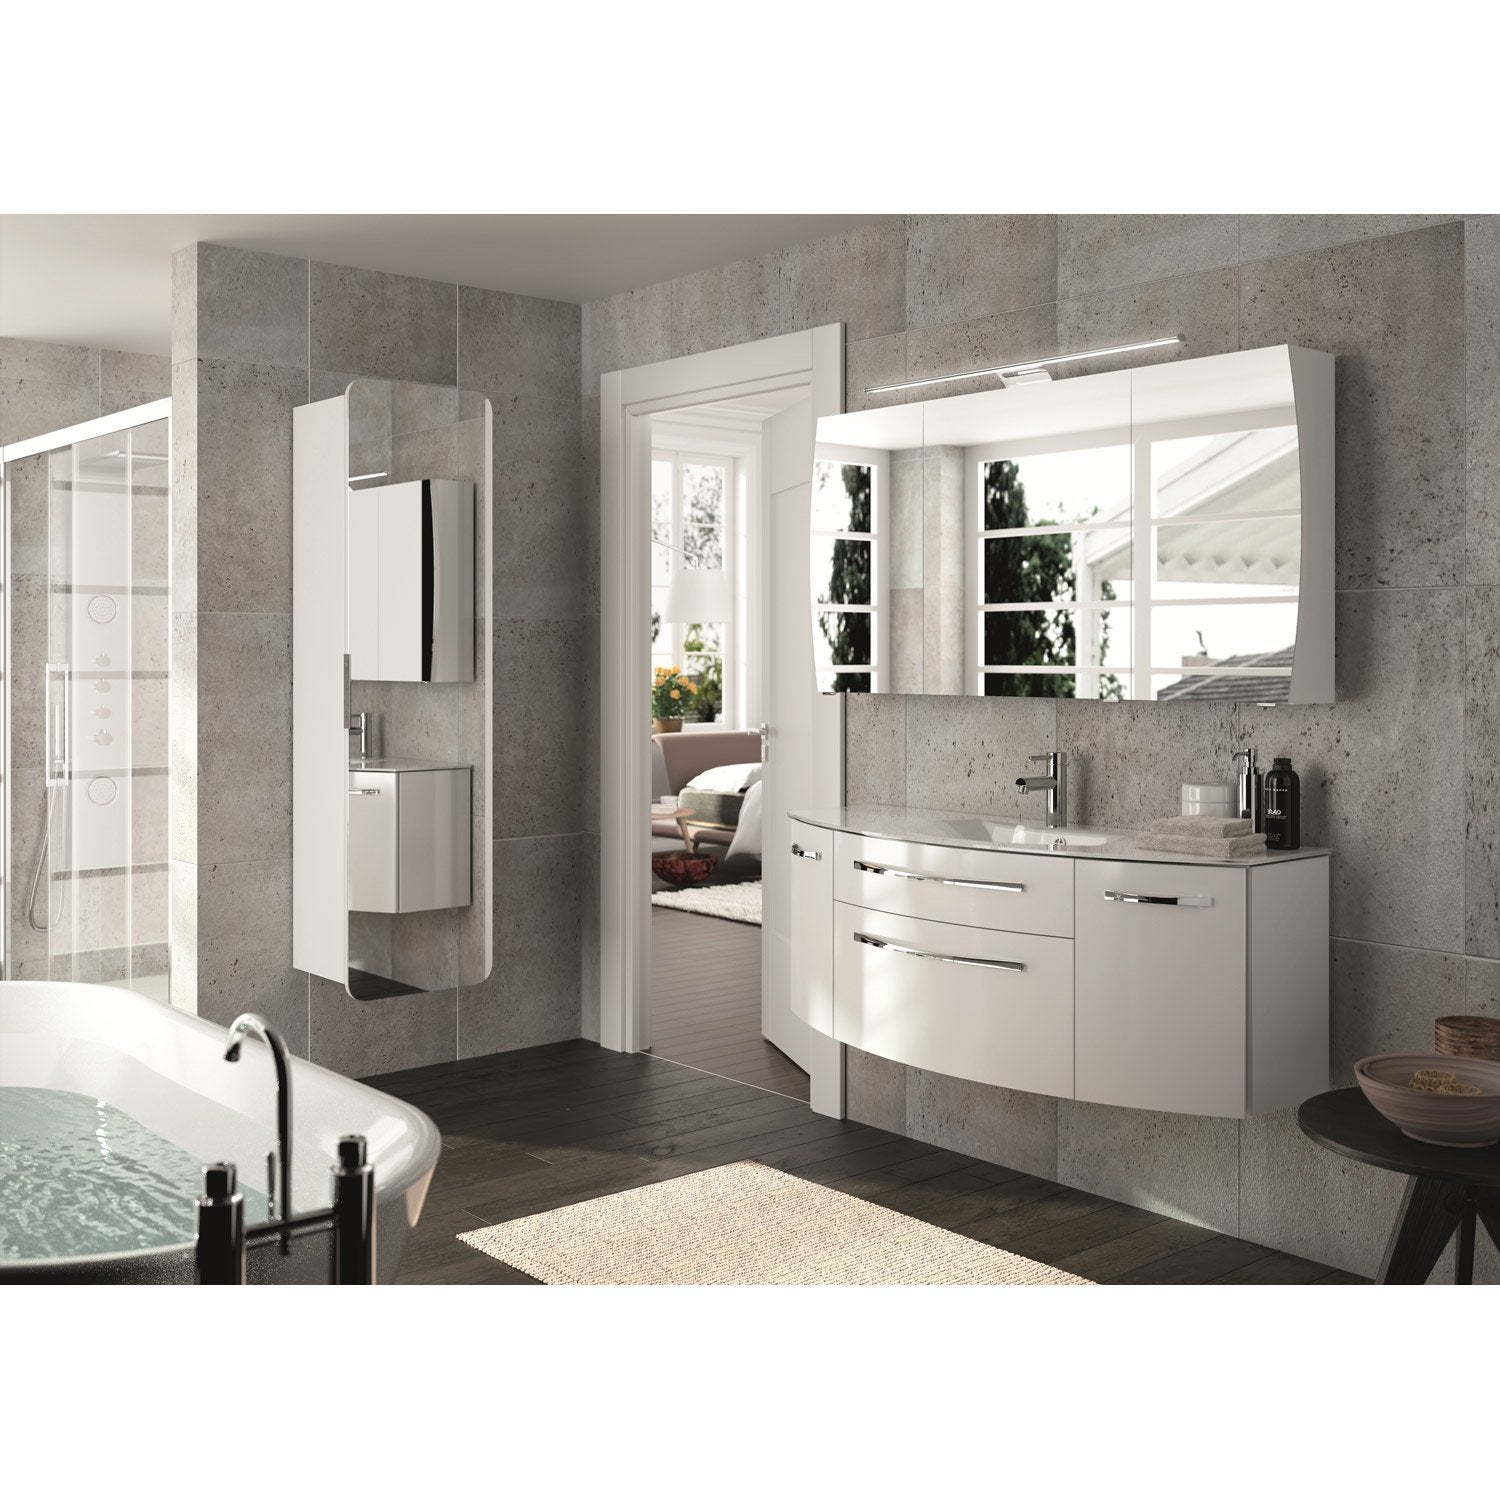 meuble de salle de bains plus de 120 blanc beige naturels image leroy merlin. Black Bedroom Furniture Sets. Home Design Ideas